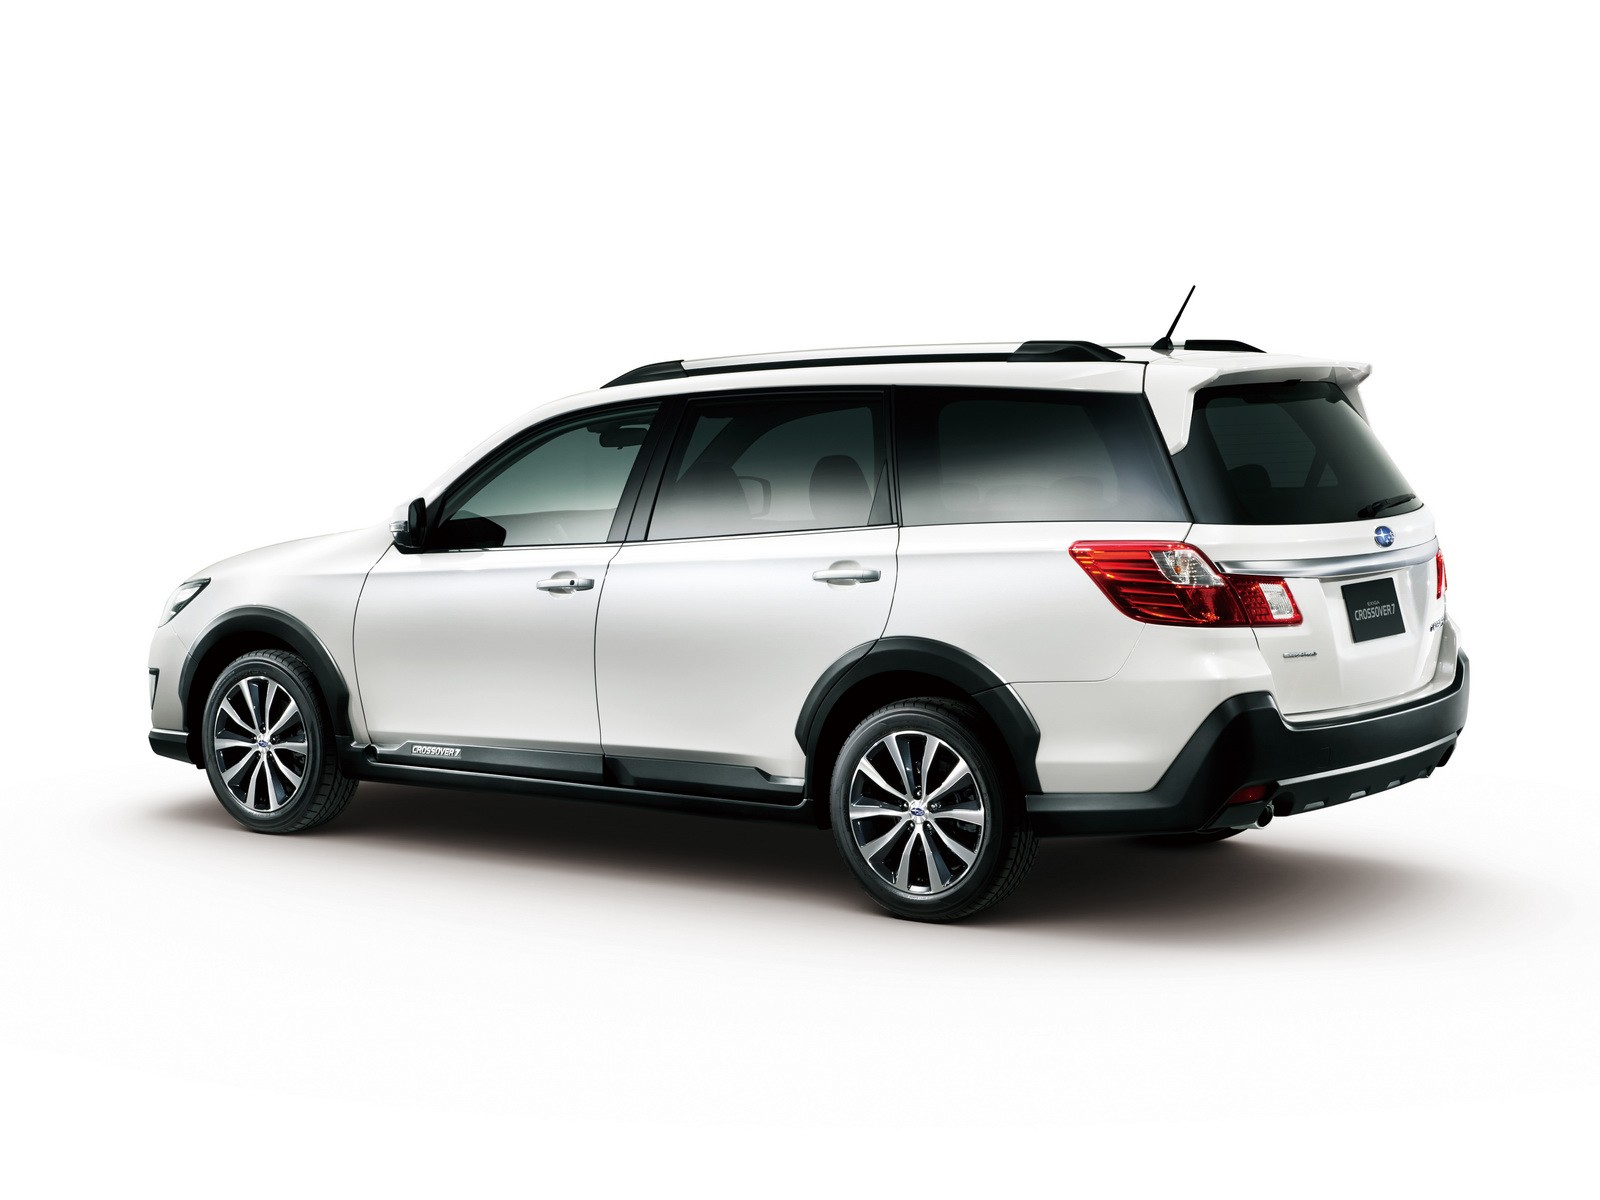 2015 Subaru Exiga Crossover 7 is Ready to Serve Japanese Families - autoevolution